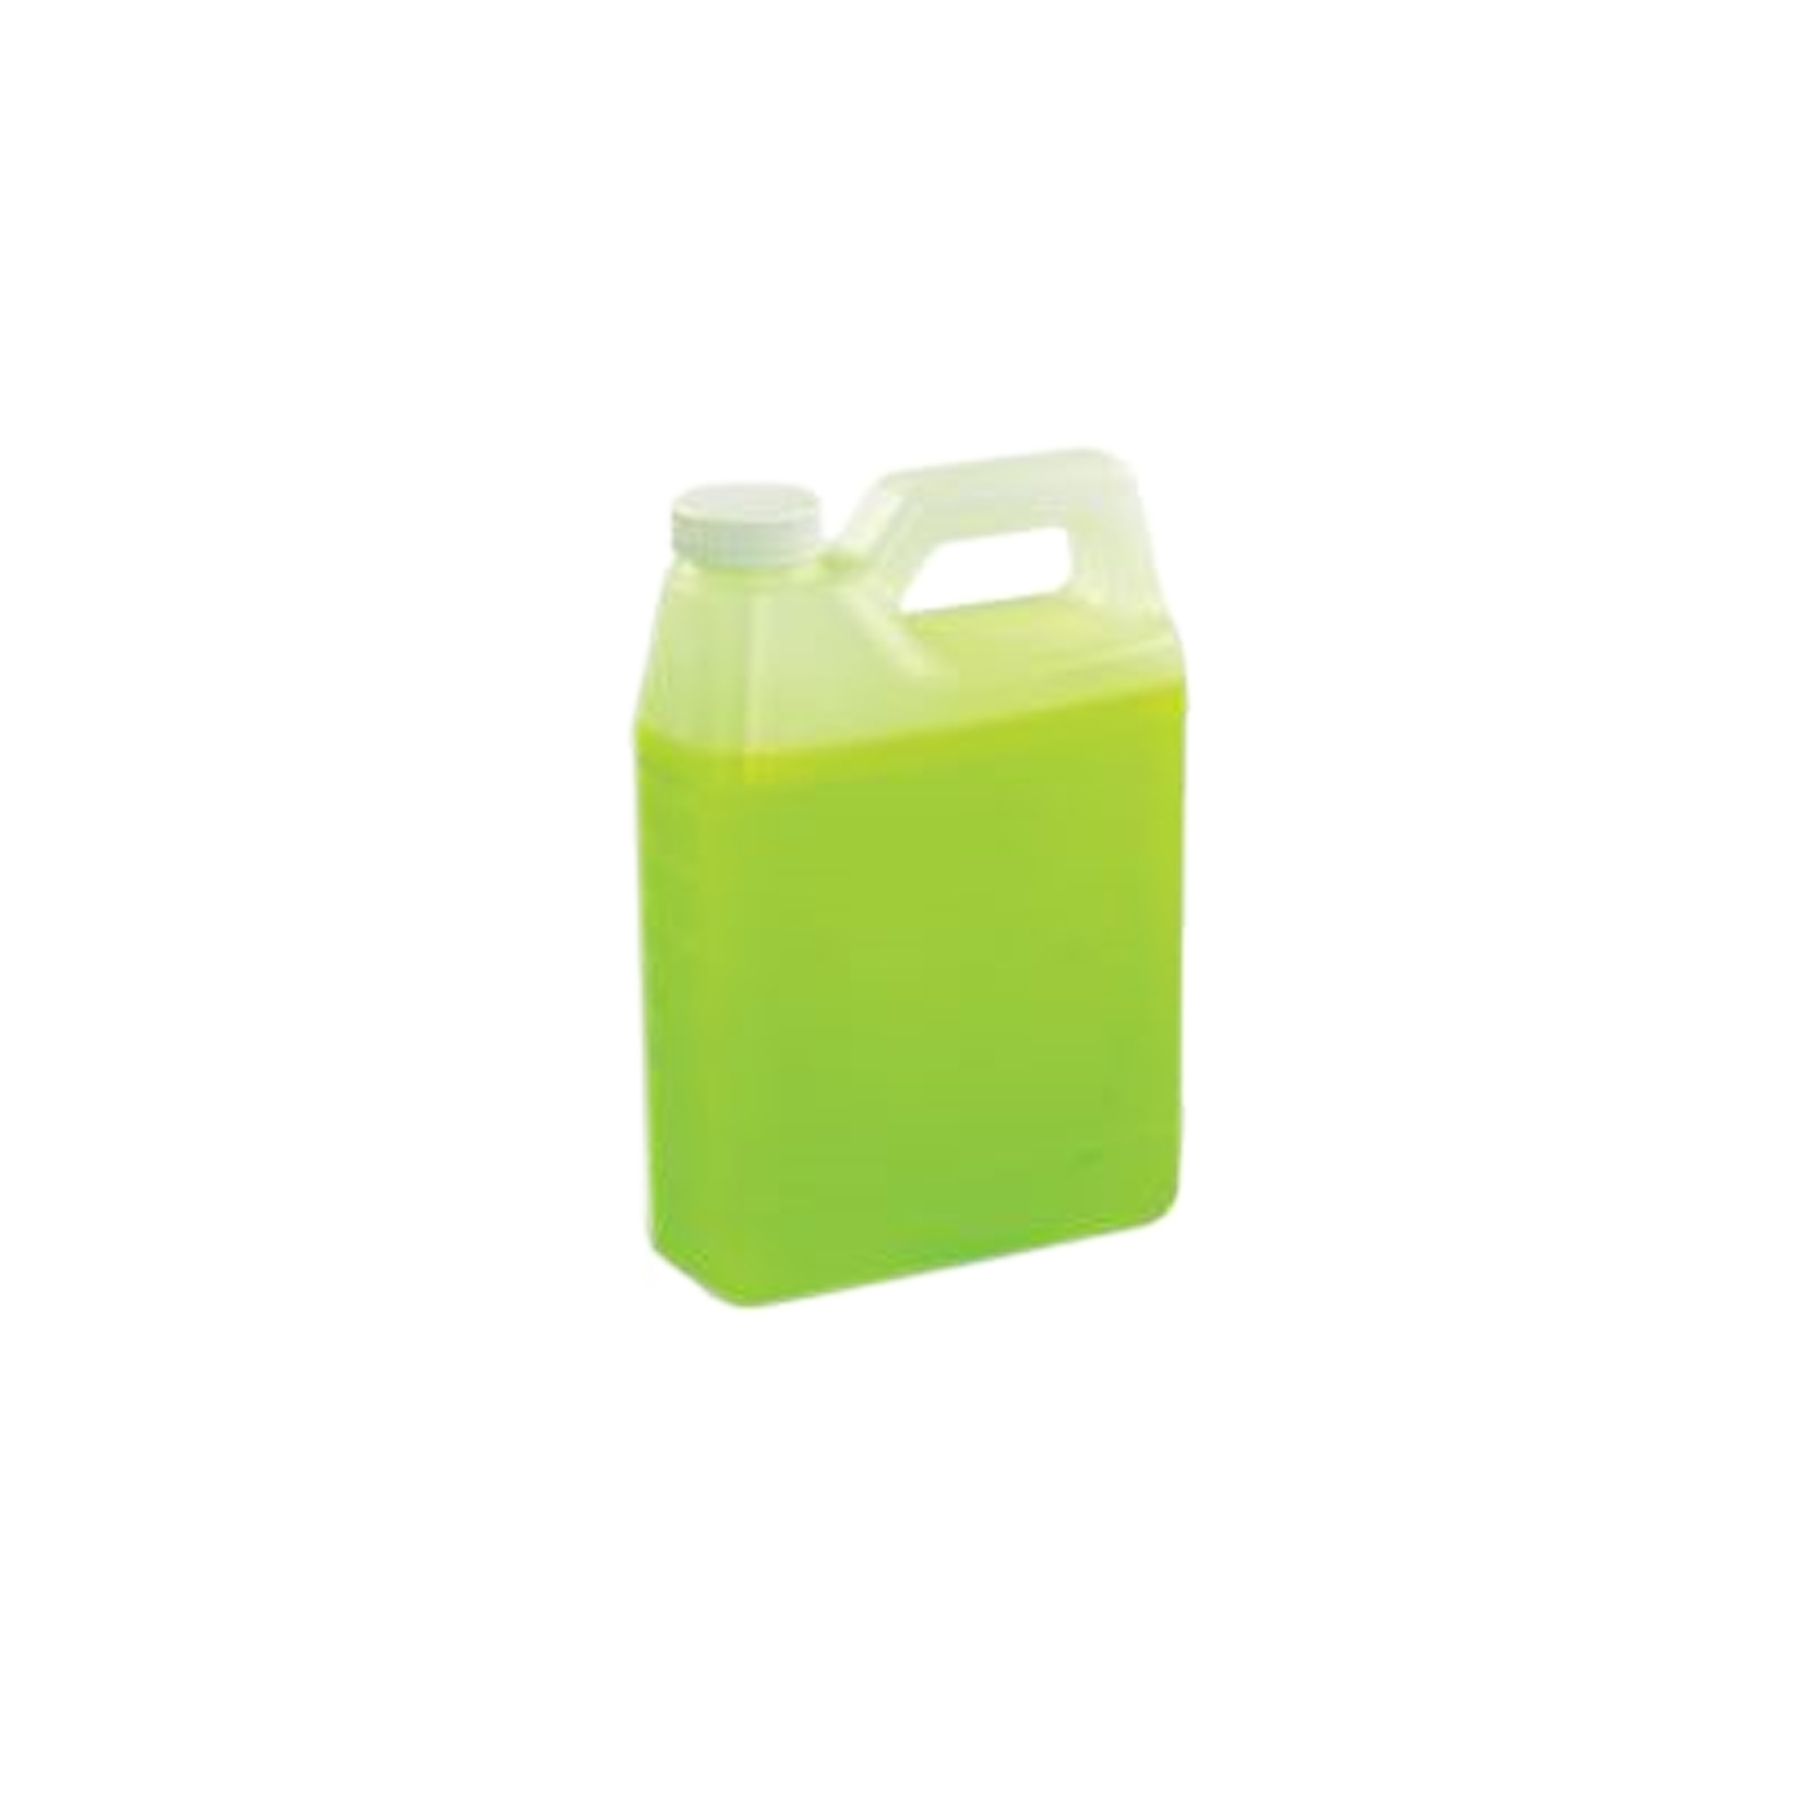 Green Propylene Glycol Antifreeze Concentrate